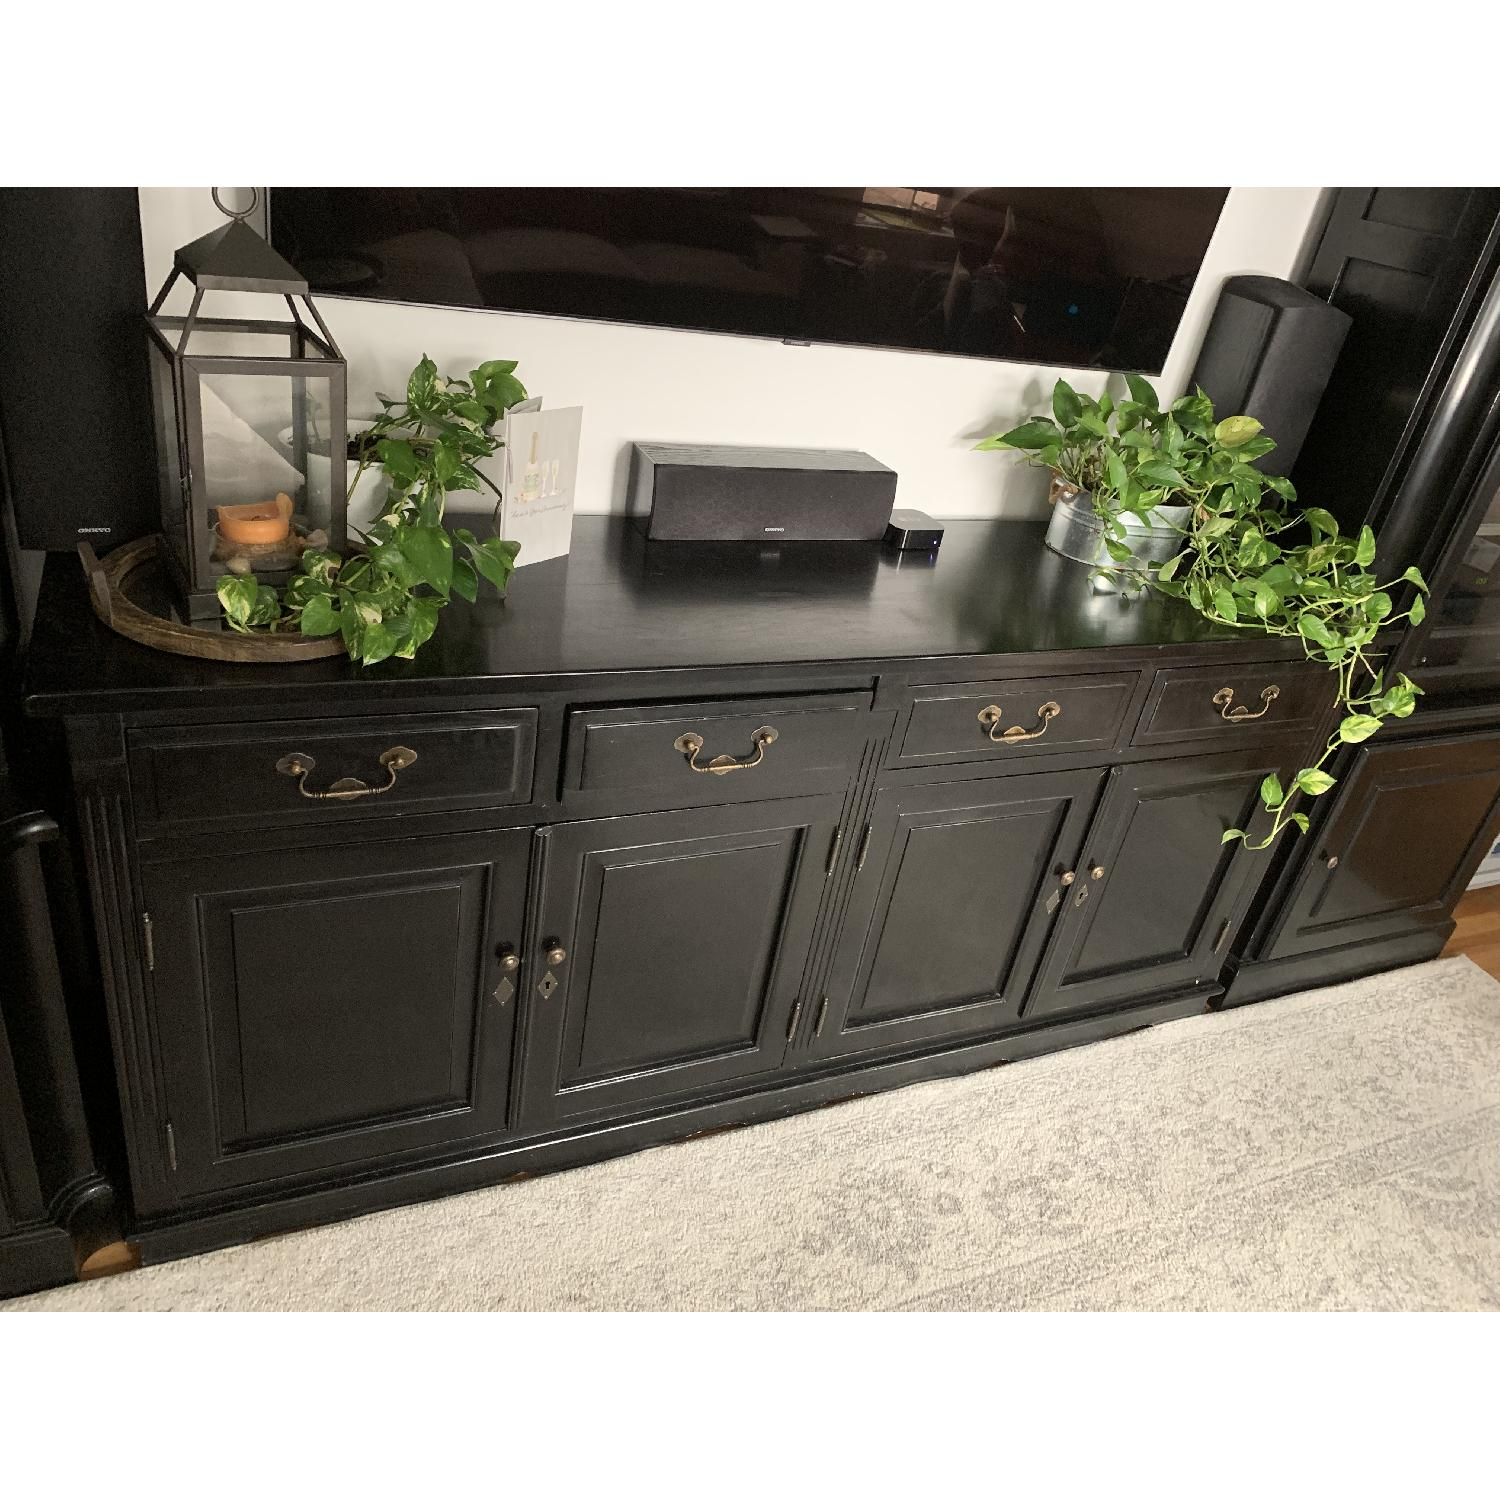 Home & Country Art Deco Sideboard - image-2